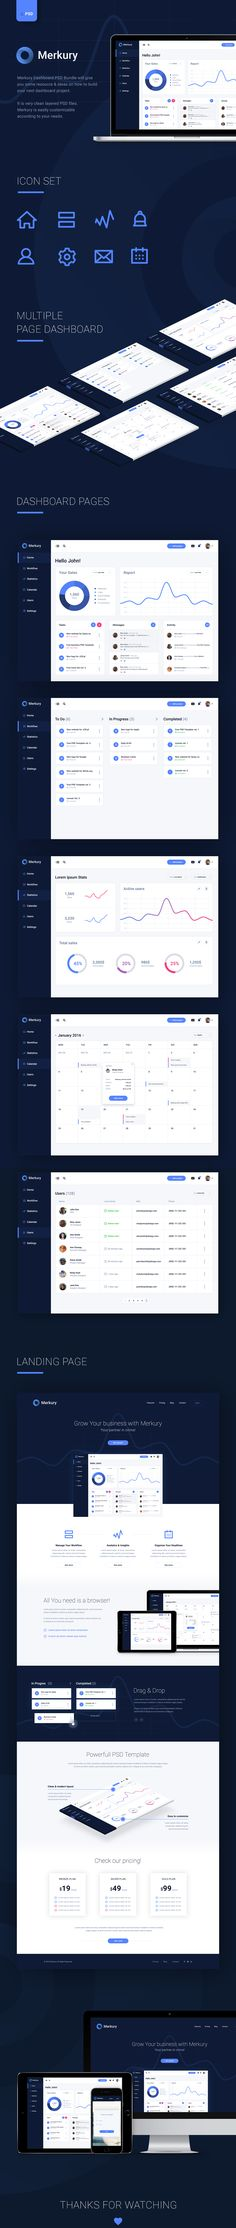 Merkury Dashboard PSD Bundle will give you some resource & ideas on how to build your next dashboard project. It is very clean layered PSD files. Merkury is easily customizable according to your needs.